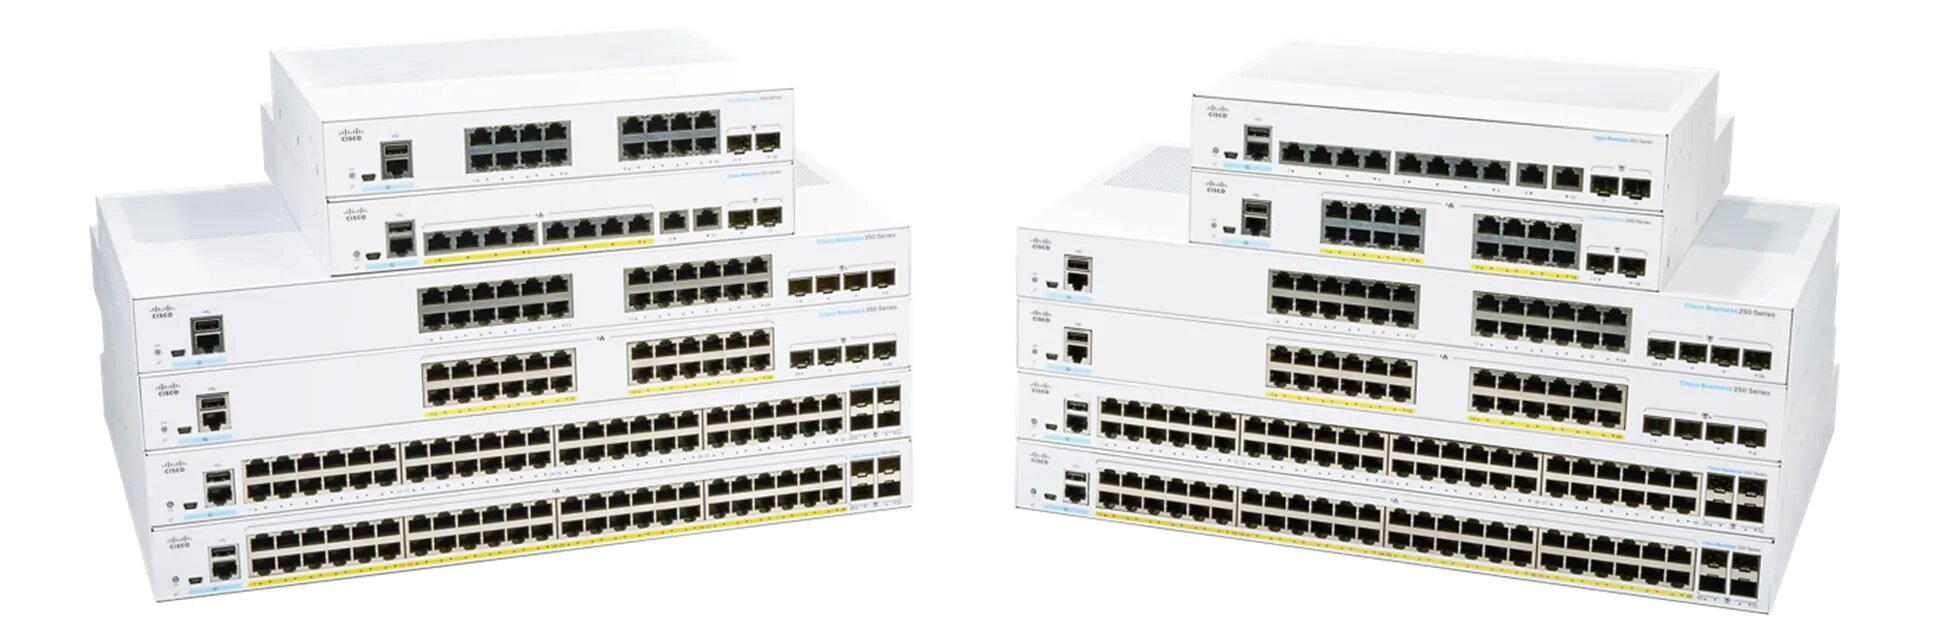 250 Series Smart Switches